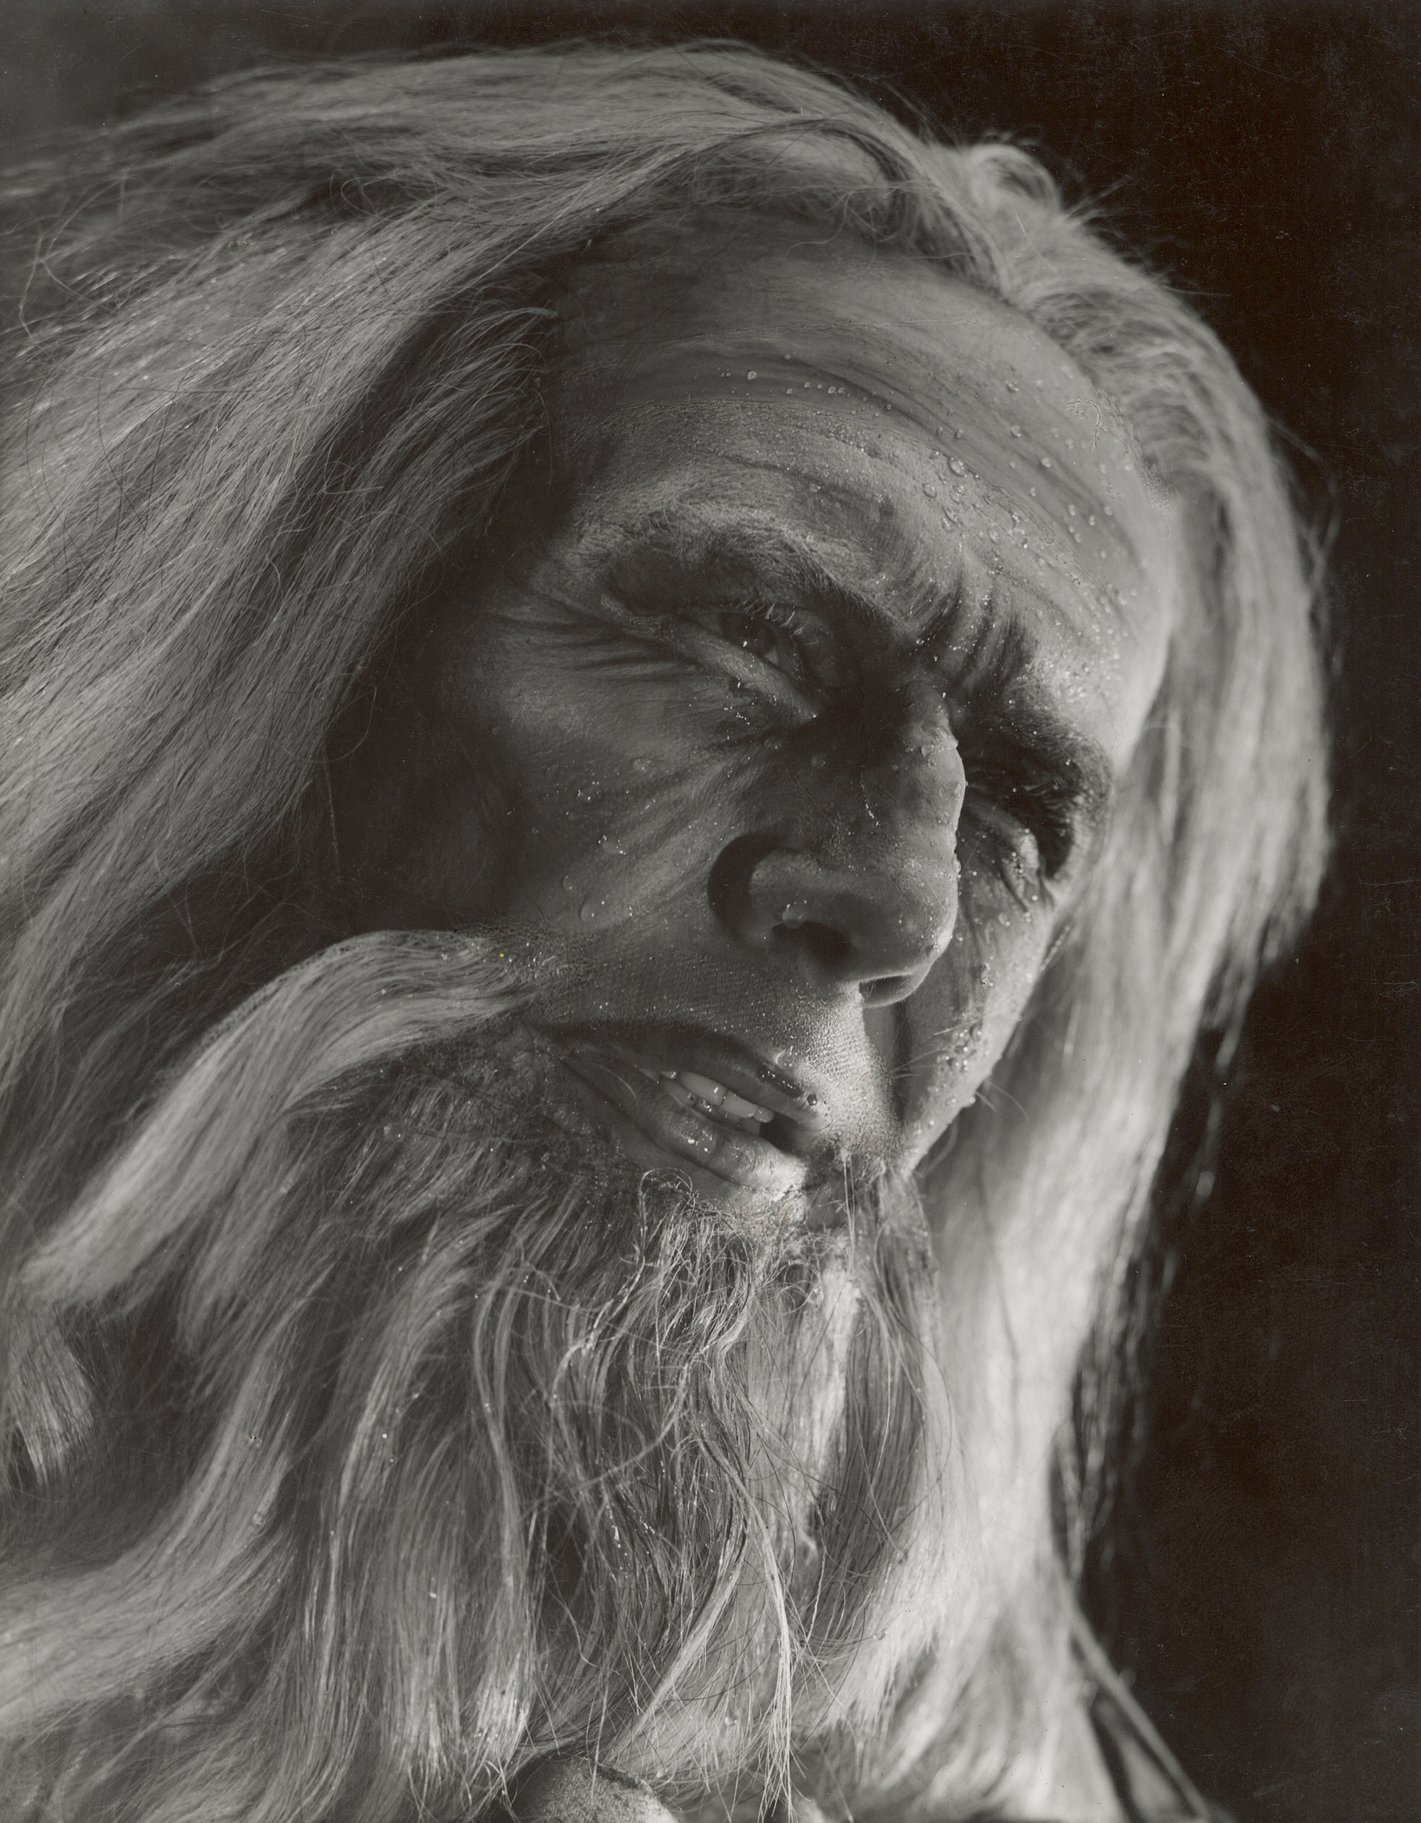 Balck and white headshot of an old man with long streaming hair and beard